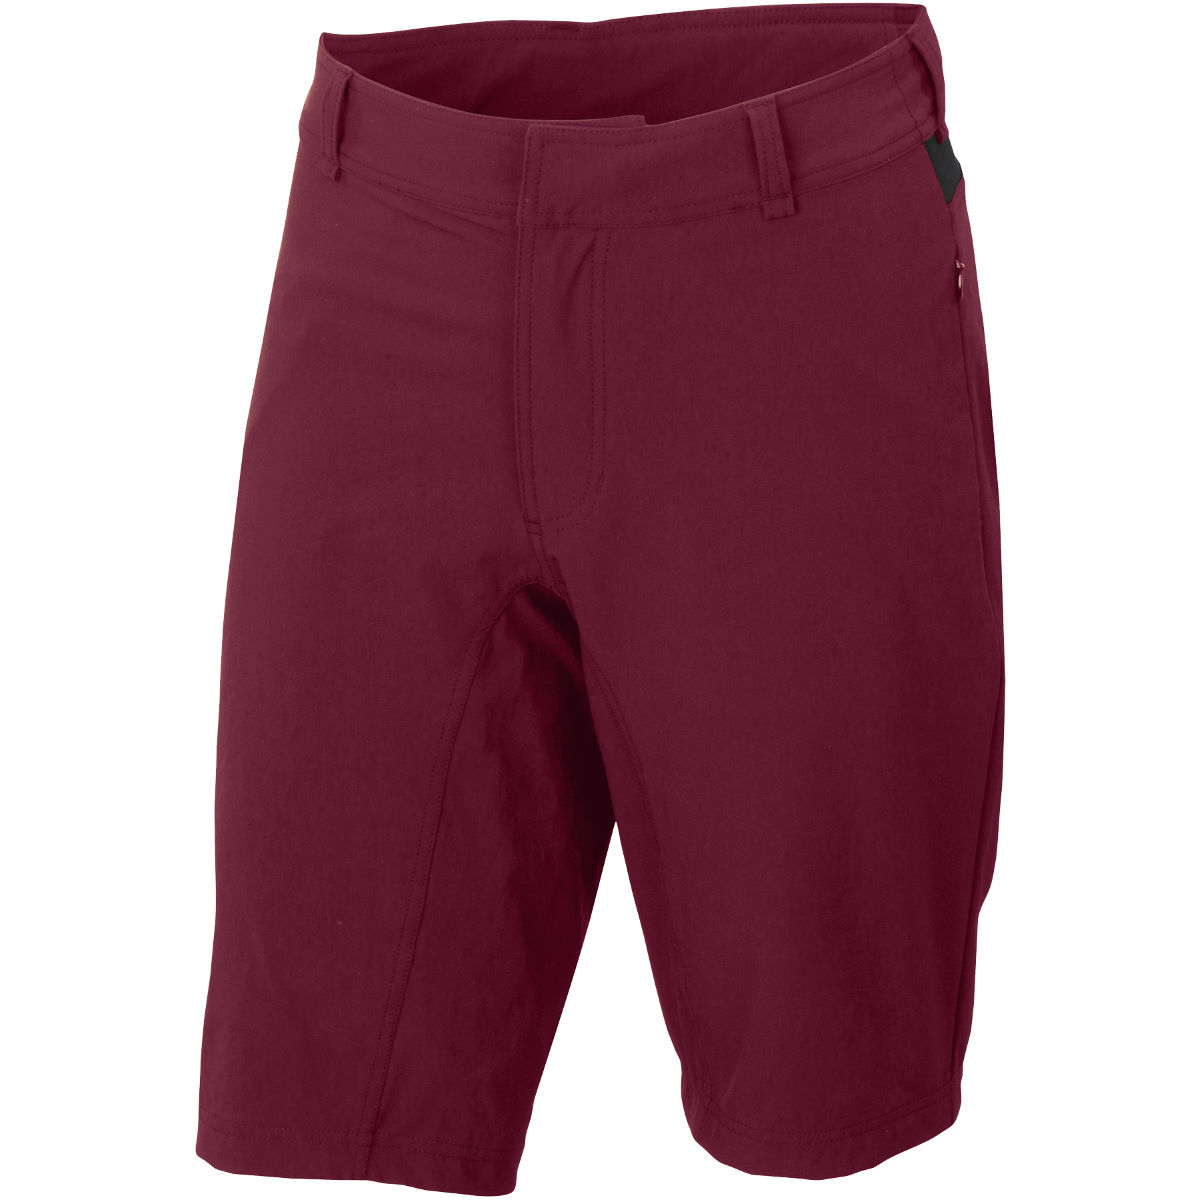 Sportful Giara Over Shorts - L Red Wine  Baggy Shorts